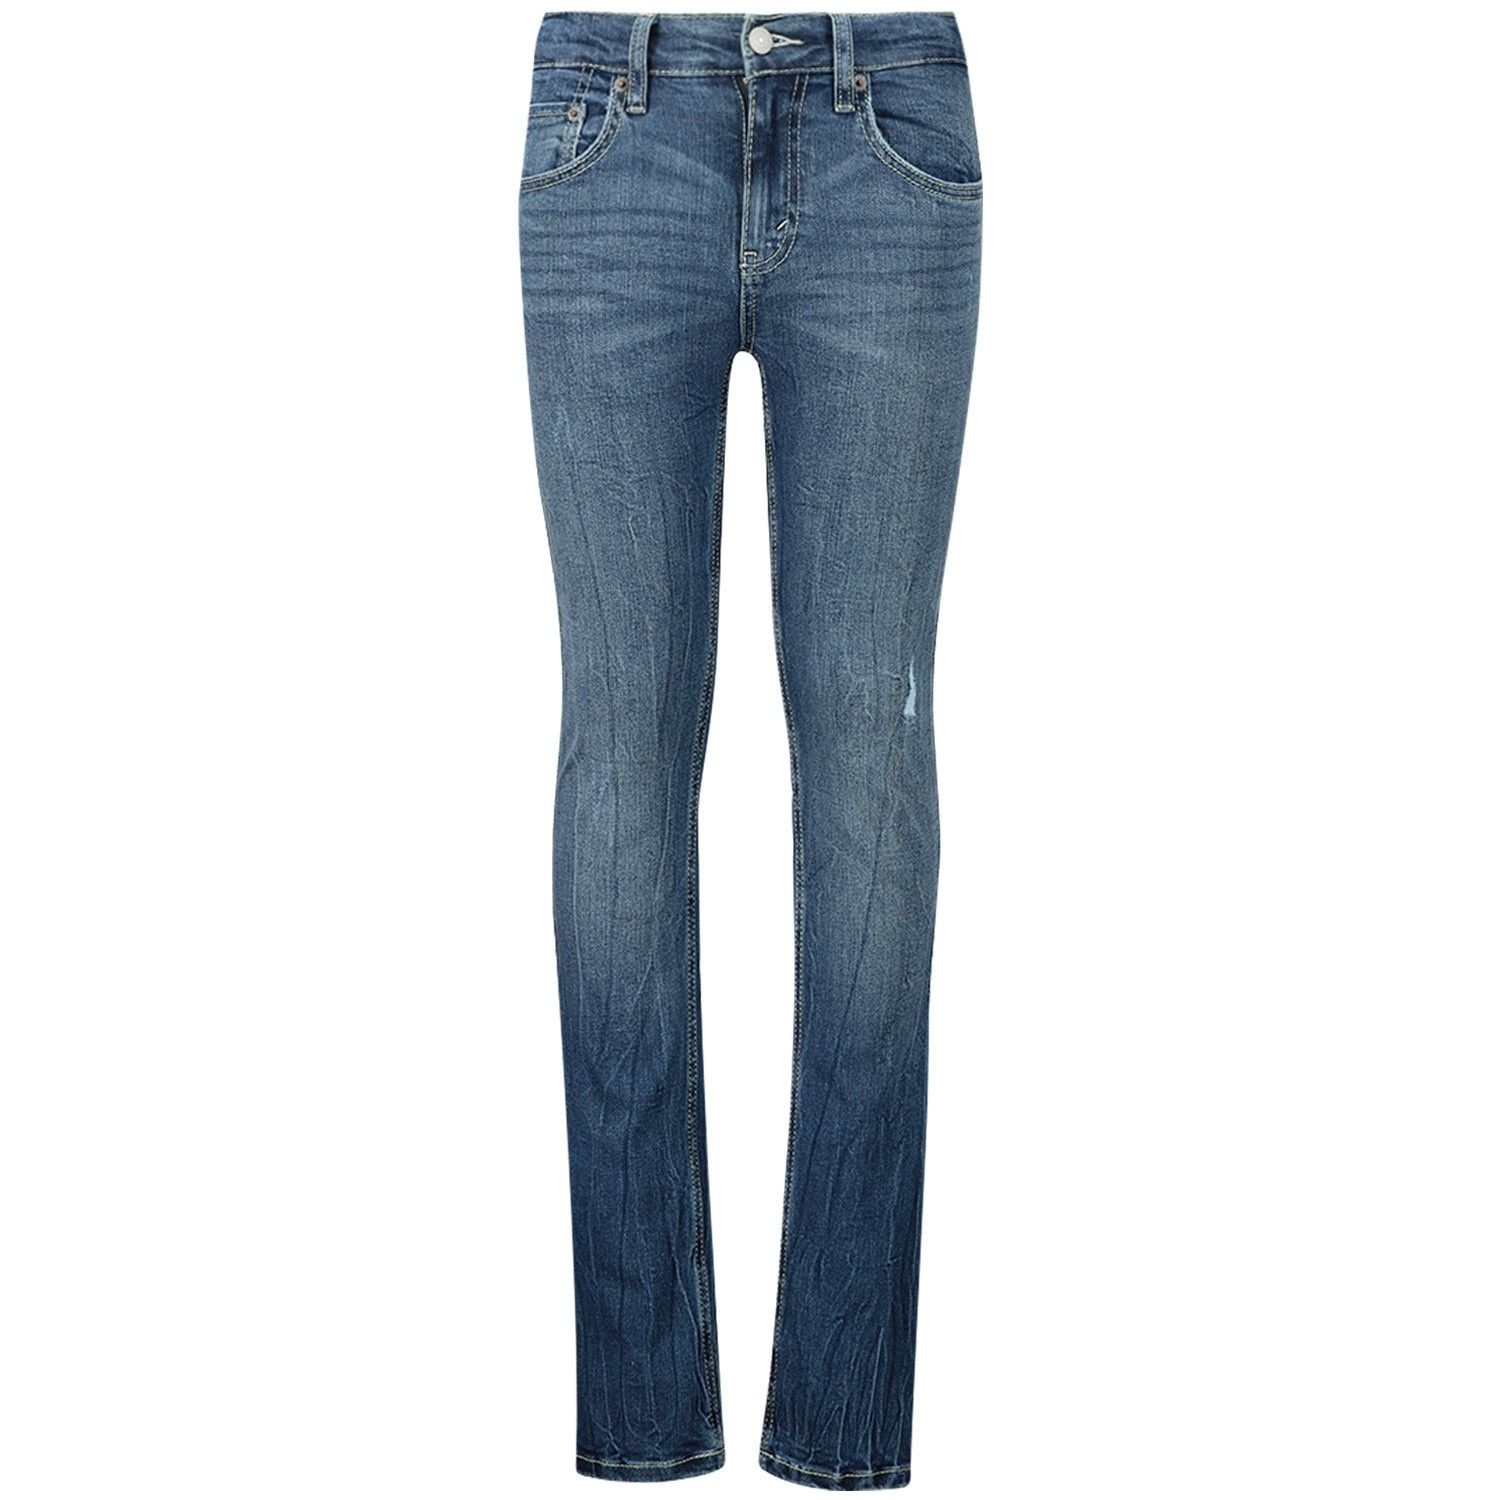 Picture of Levi's NP22147 kids jeans jeans